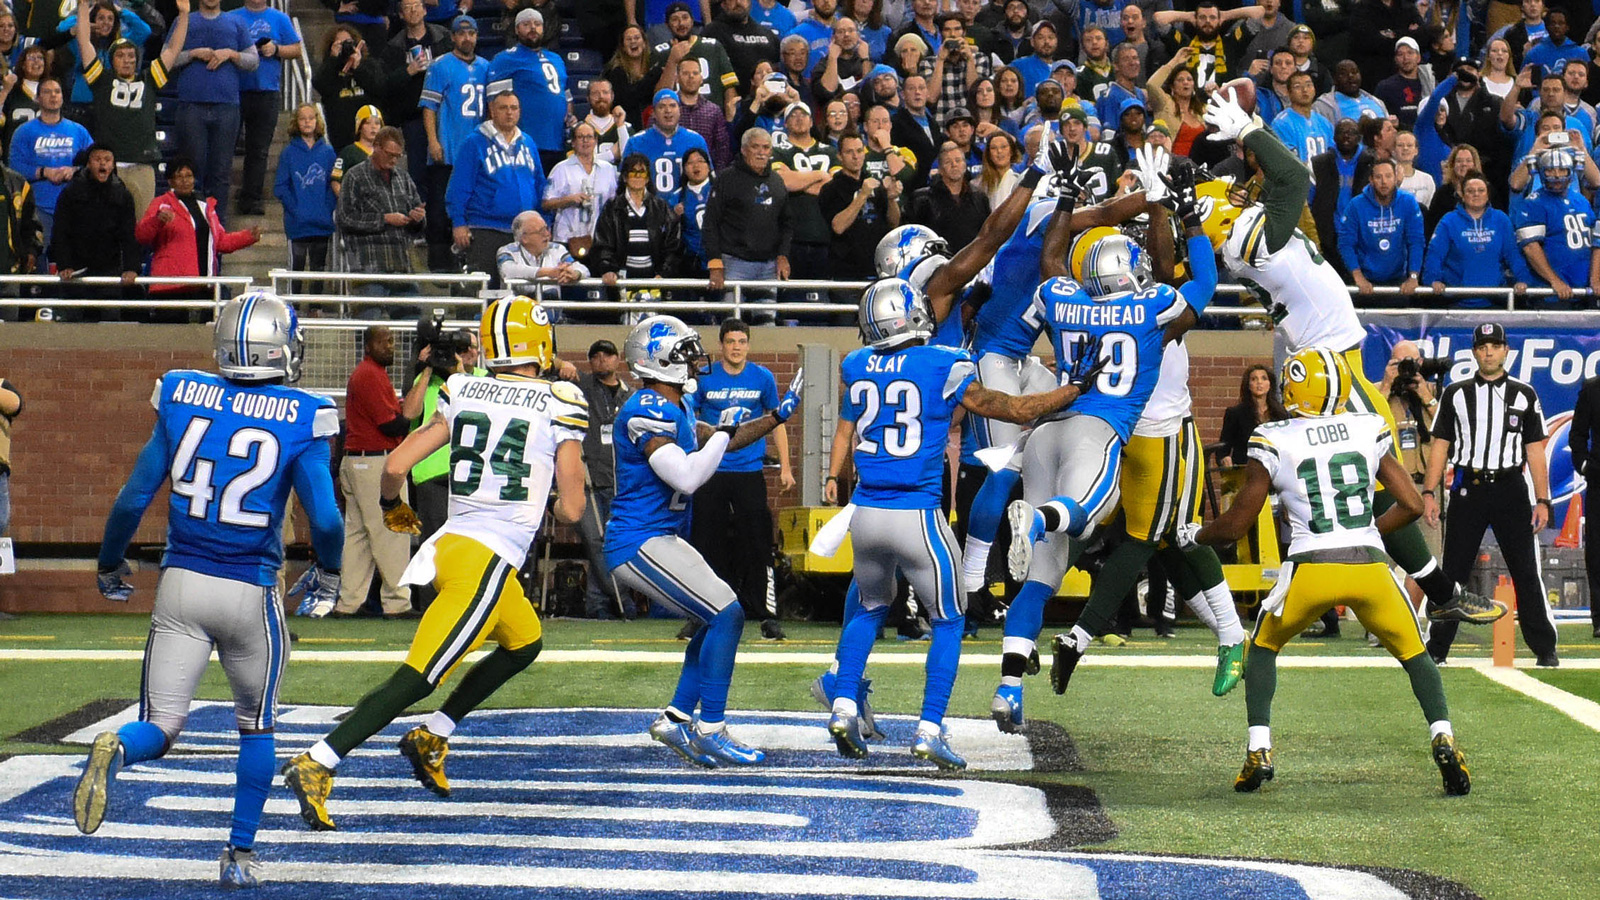 A lot went wrong for Lions on Hail Mary